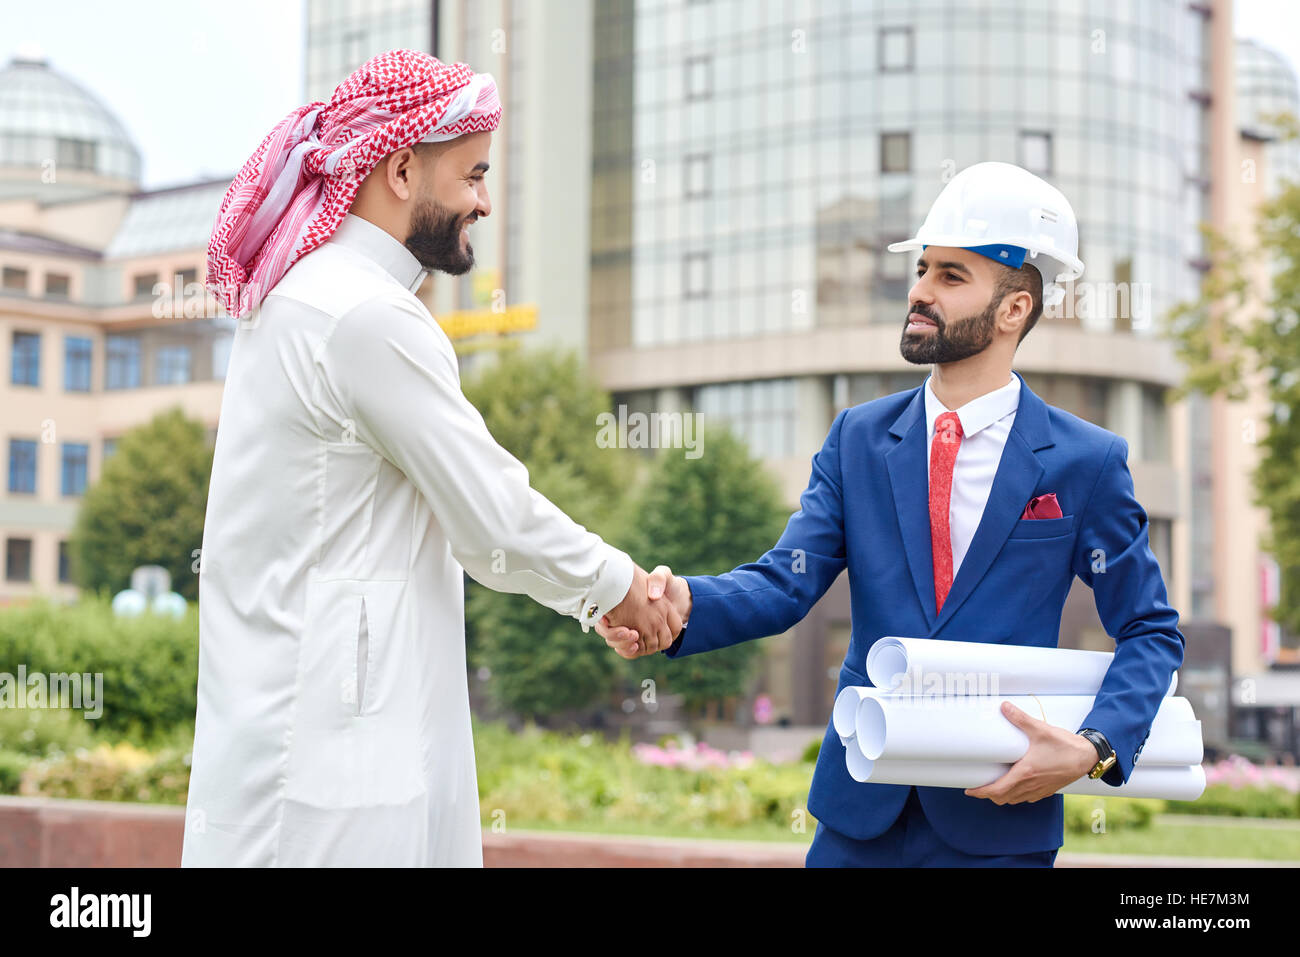 Total understanding. Portrait of a Saudi businessman shaking hands with an architect outdoors on the background - Stock Image